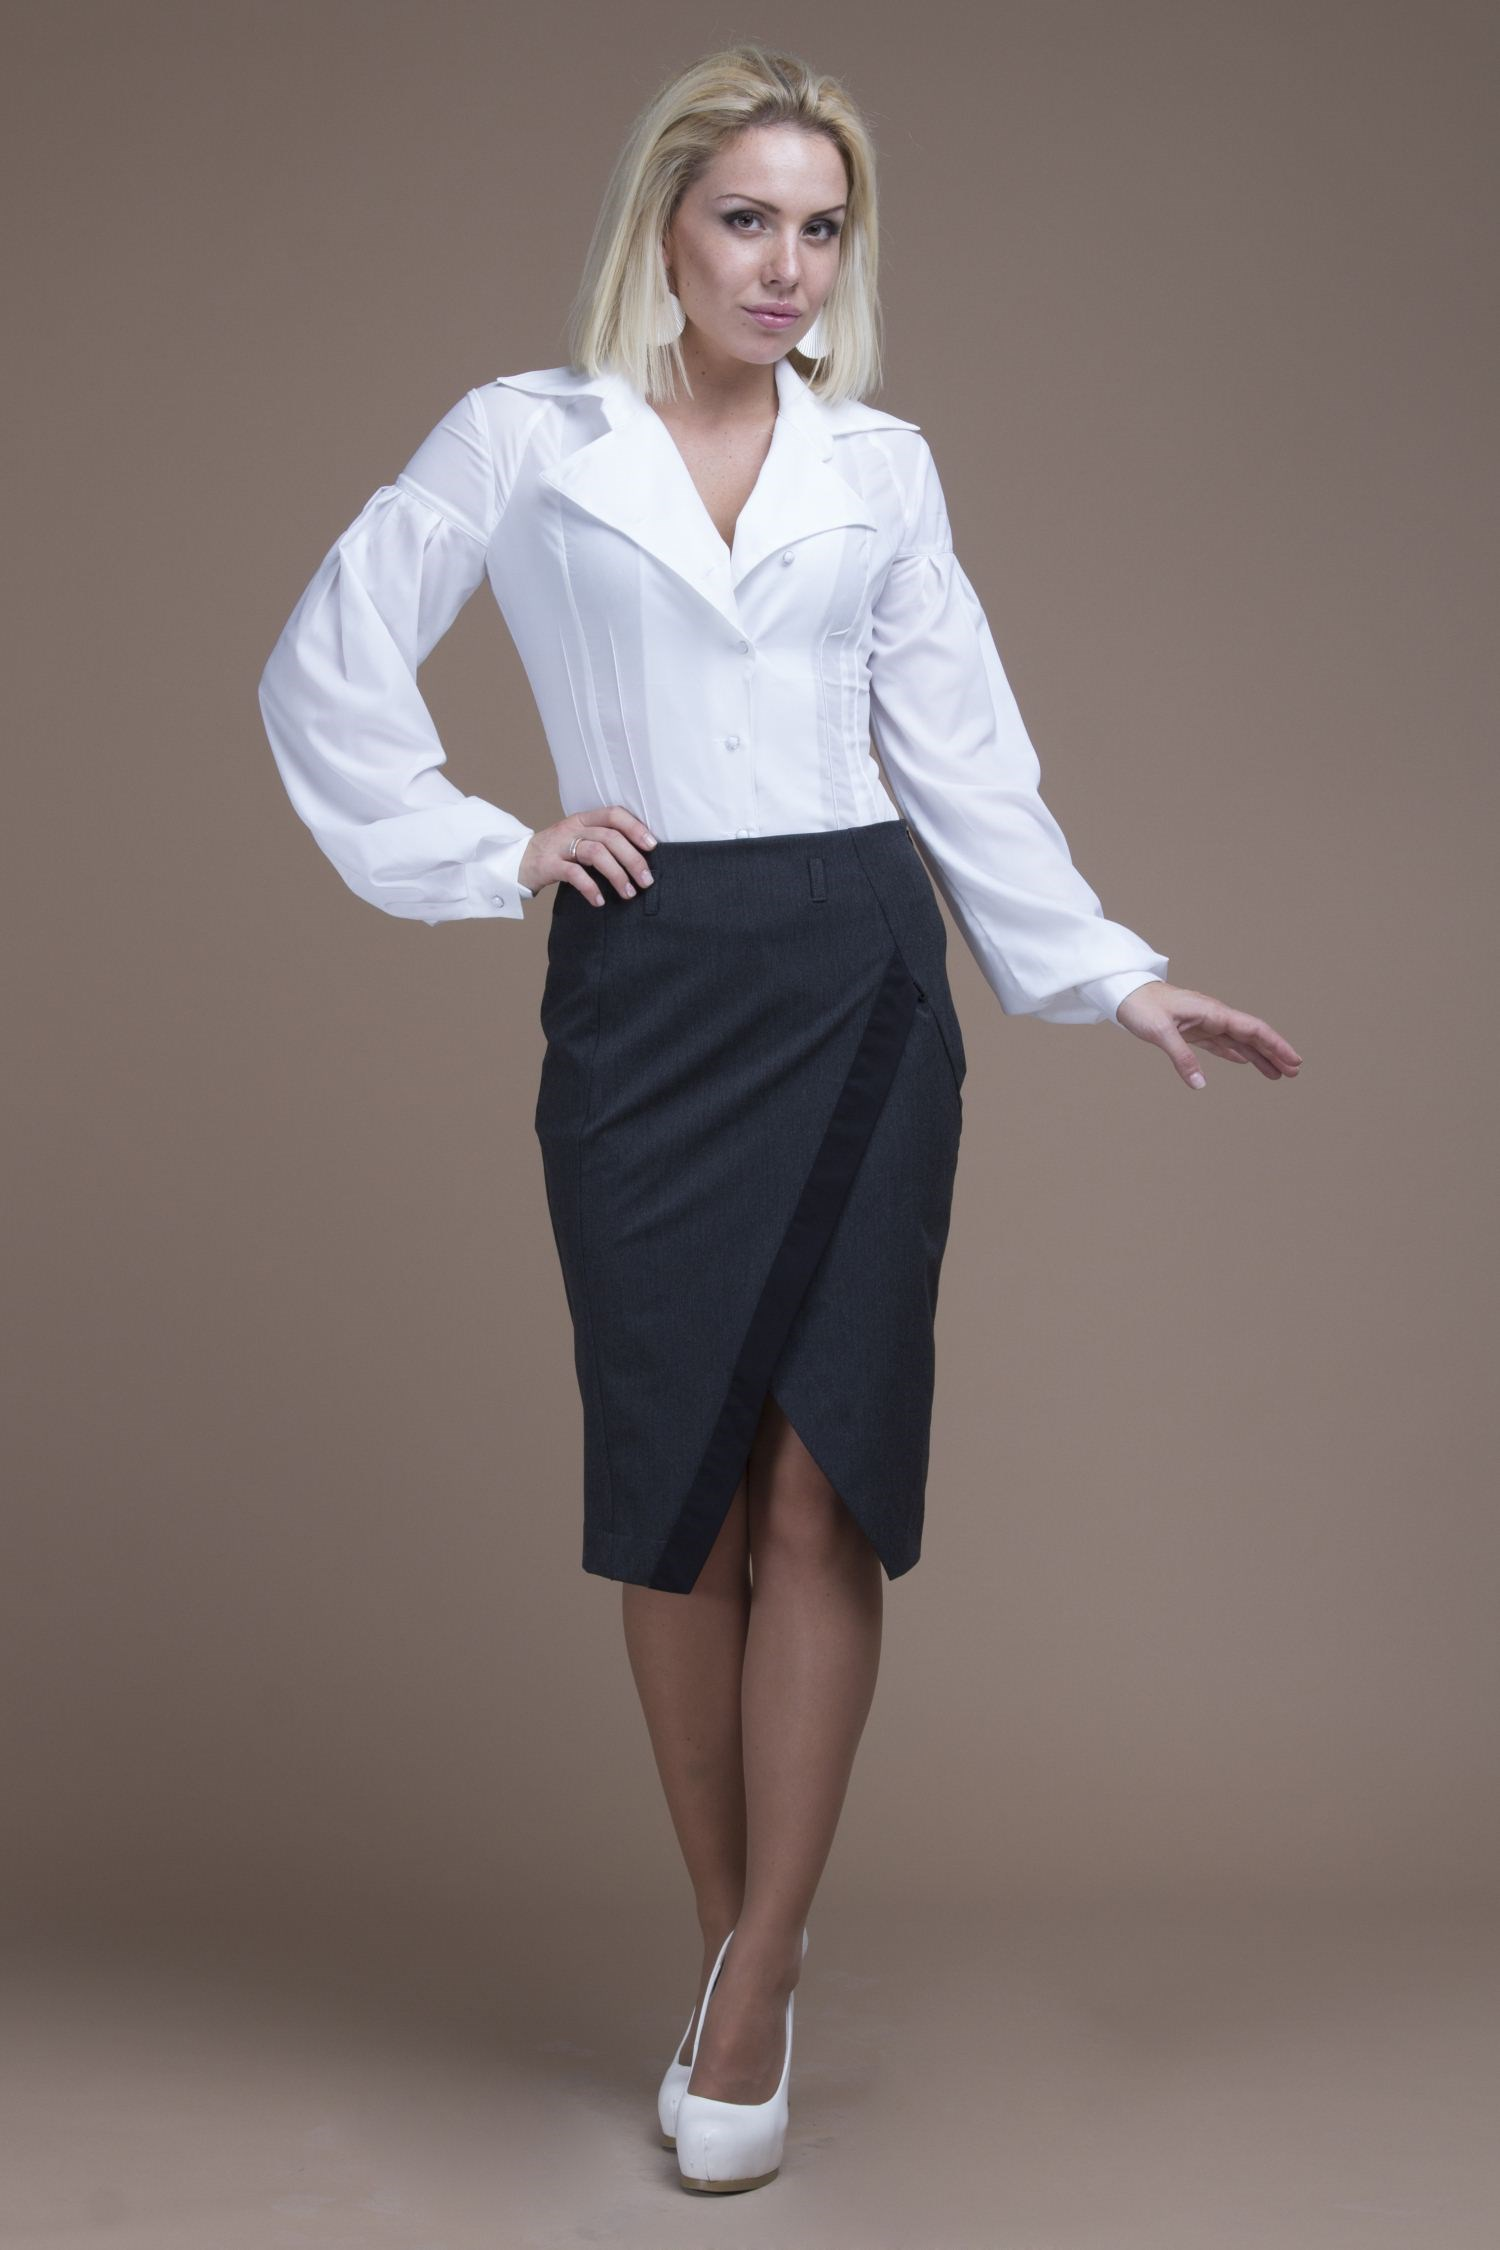 Office pencil skirt with decorative V-neck plaid pencil skirt